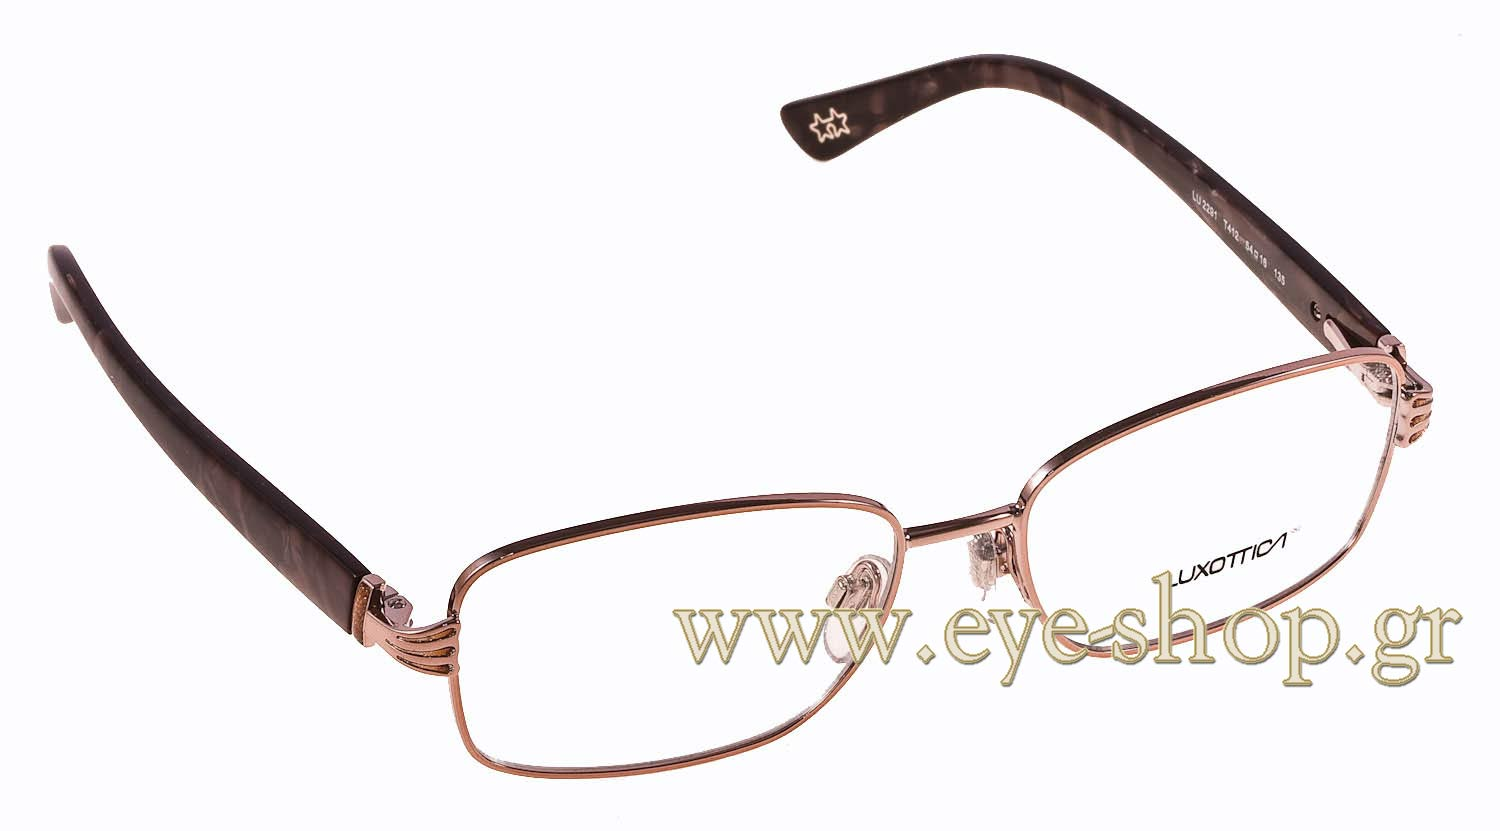 Eyeglass Frames Not Made By Luxottica : EYEWEAR LUXOTTICA 2291 T412 54? Women 2017 ver1.